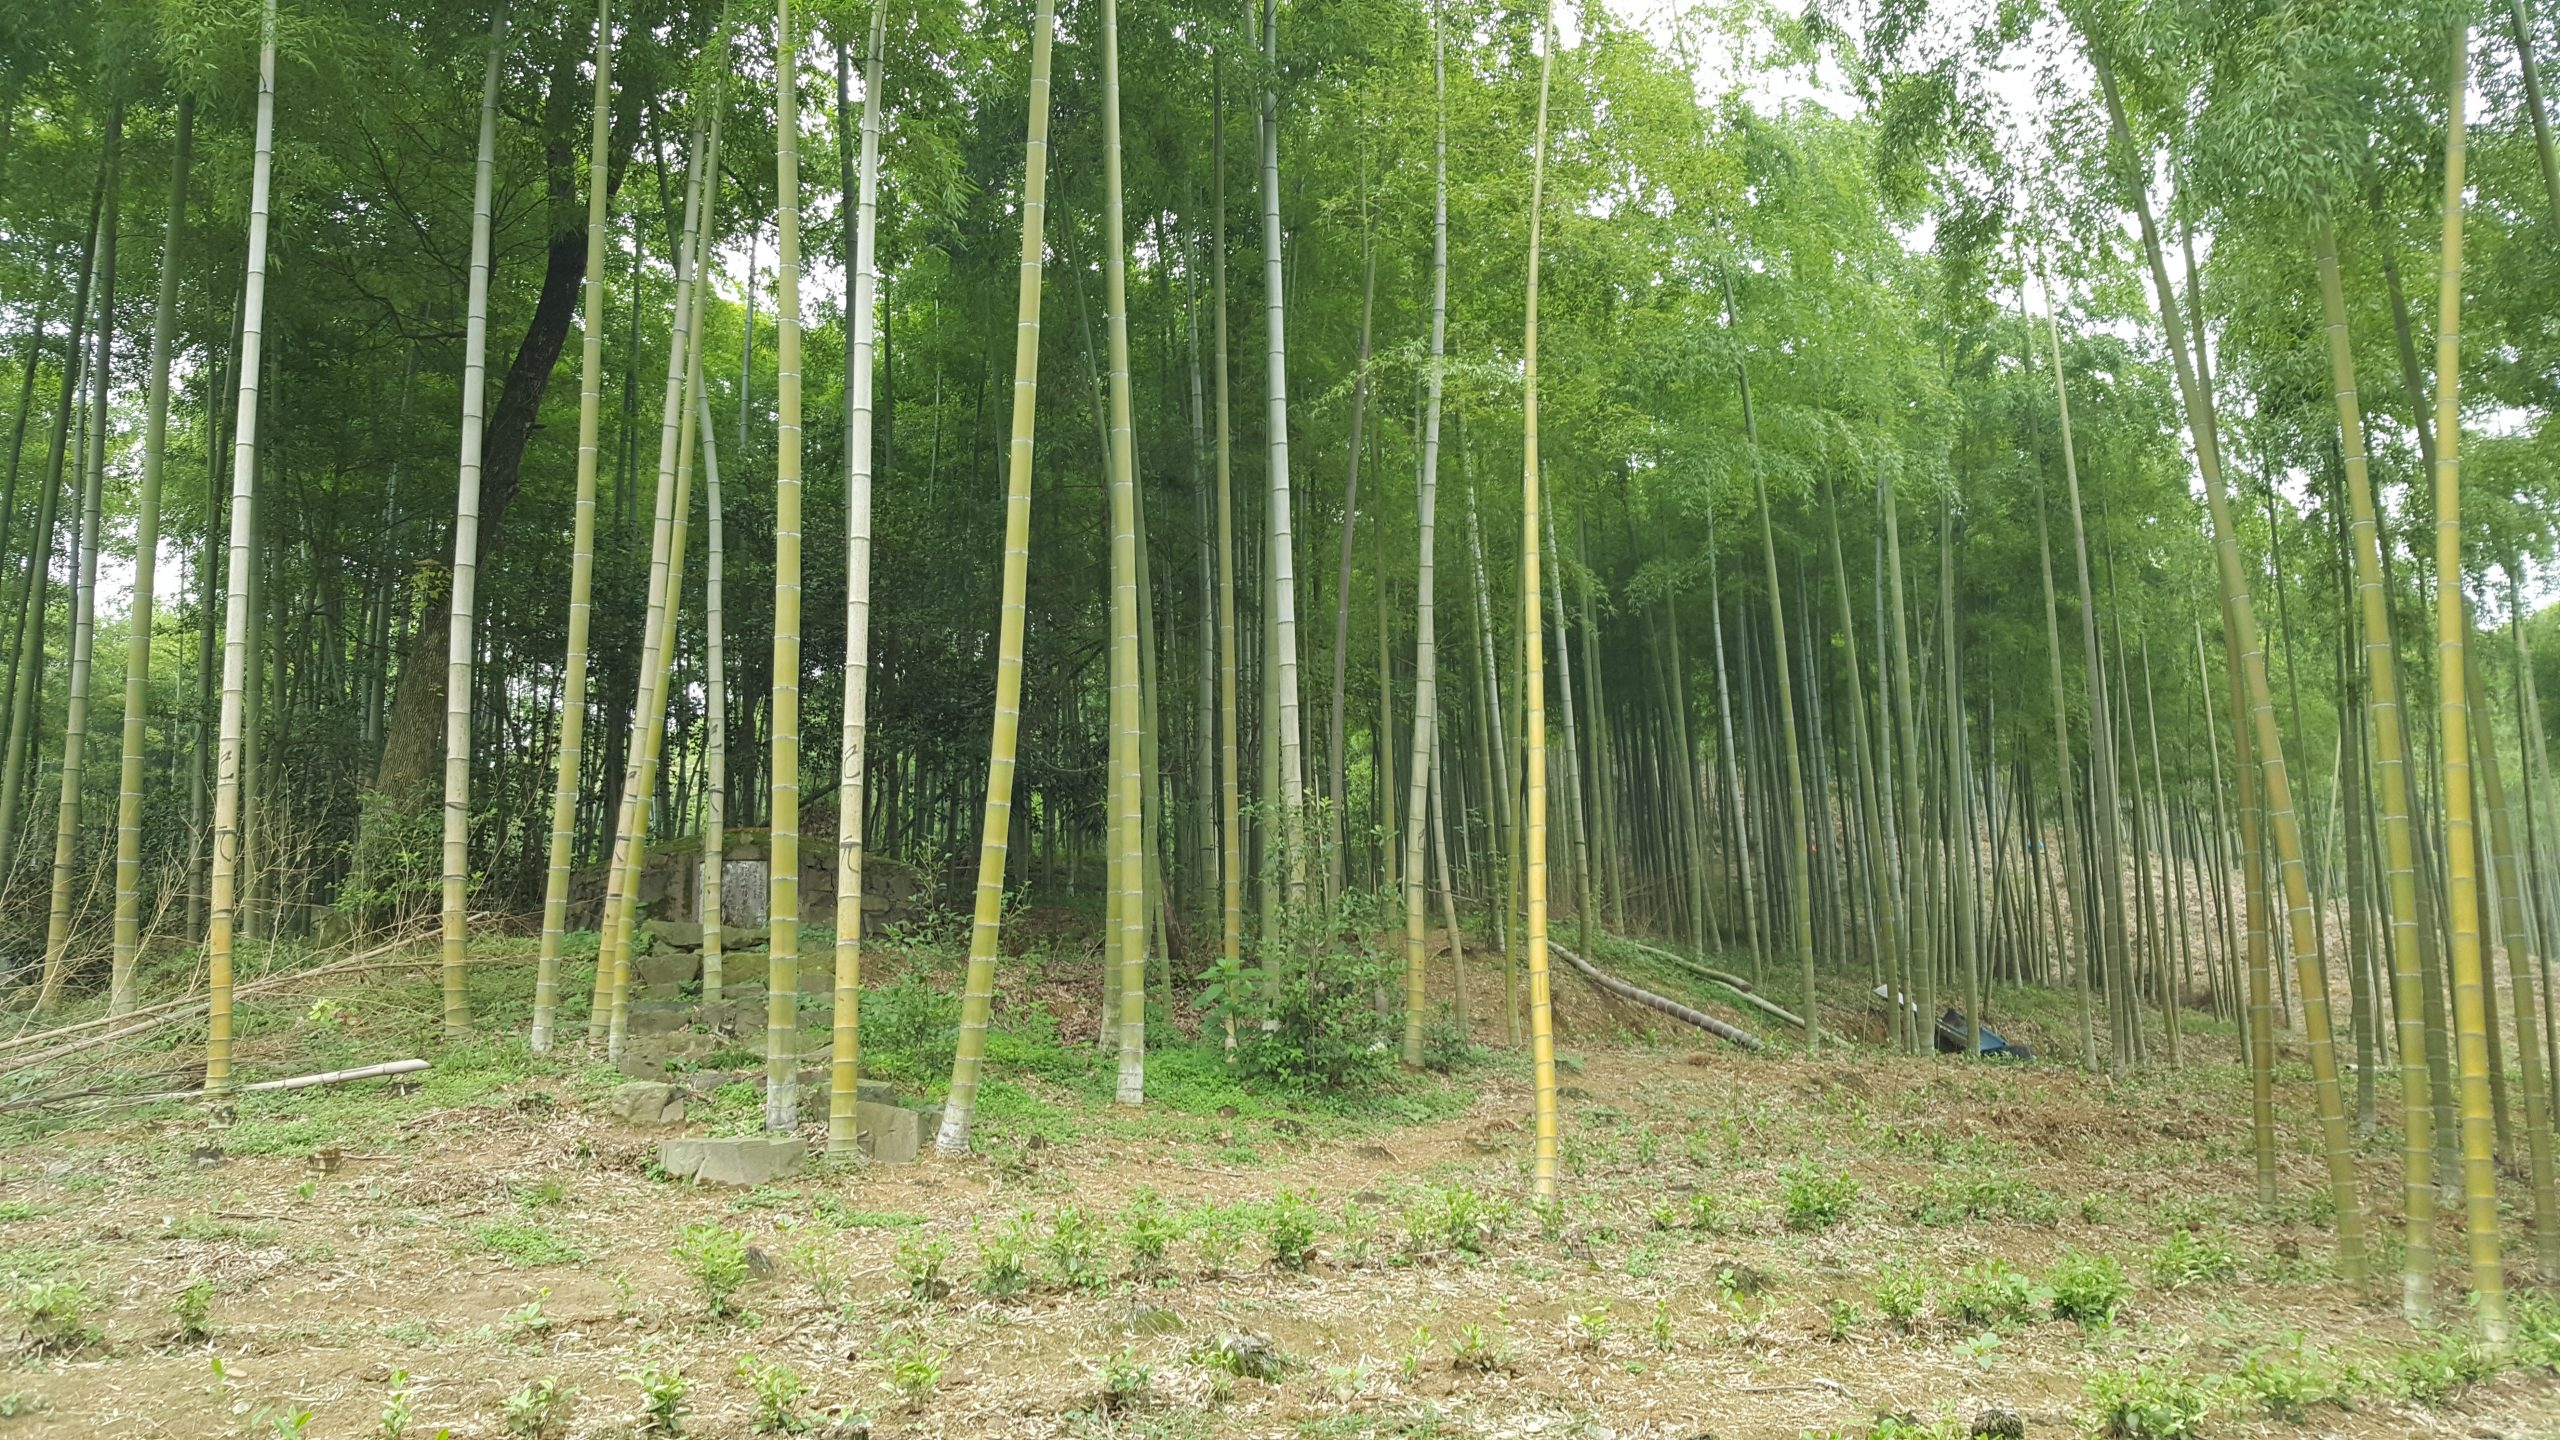 UK Bamboo supplies - The benefits of growing Bamboo